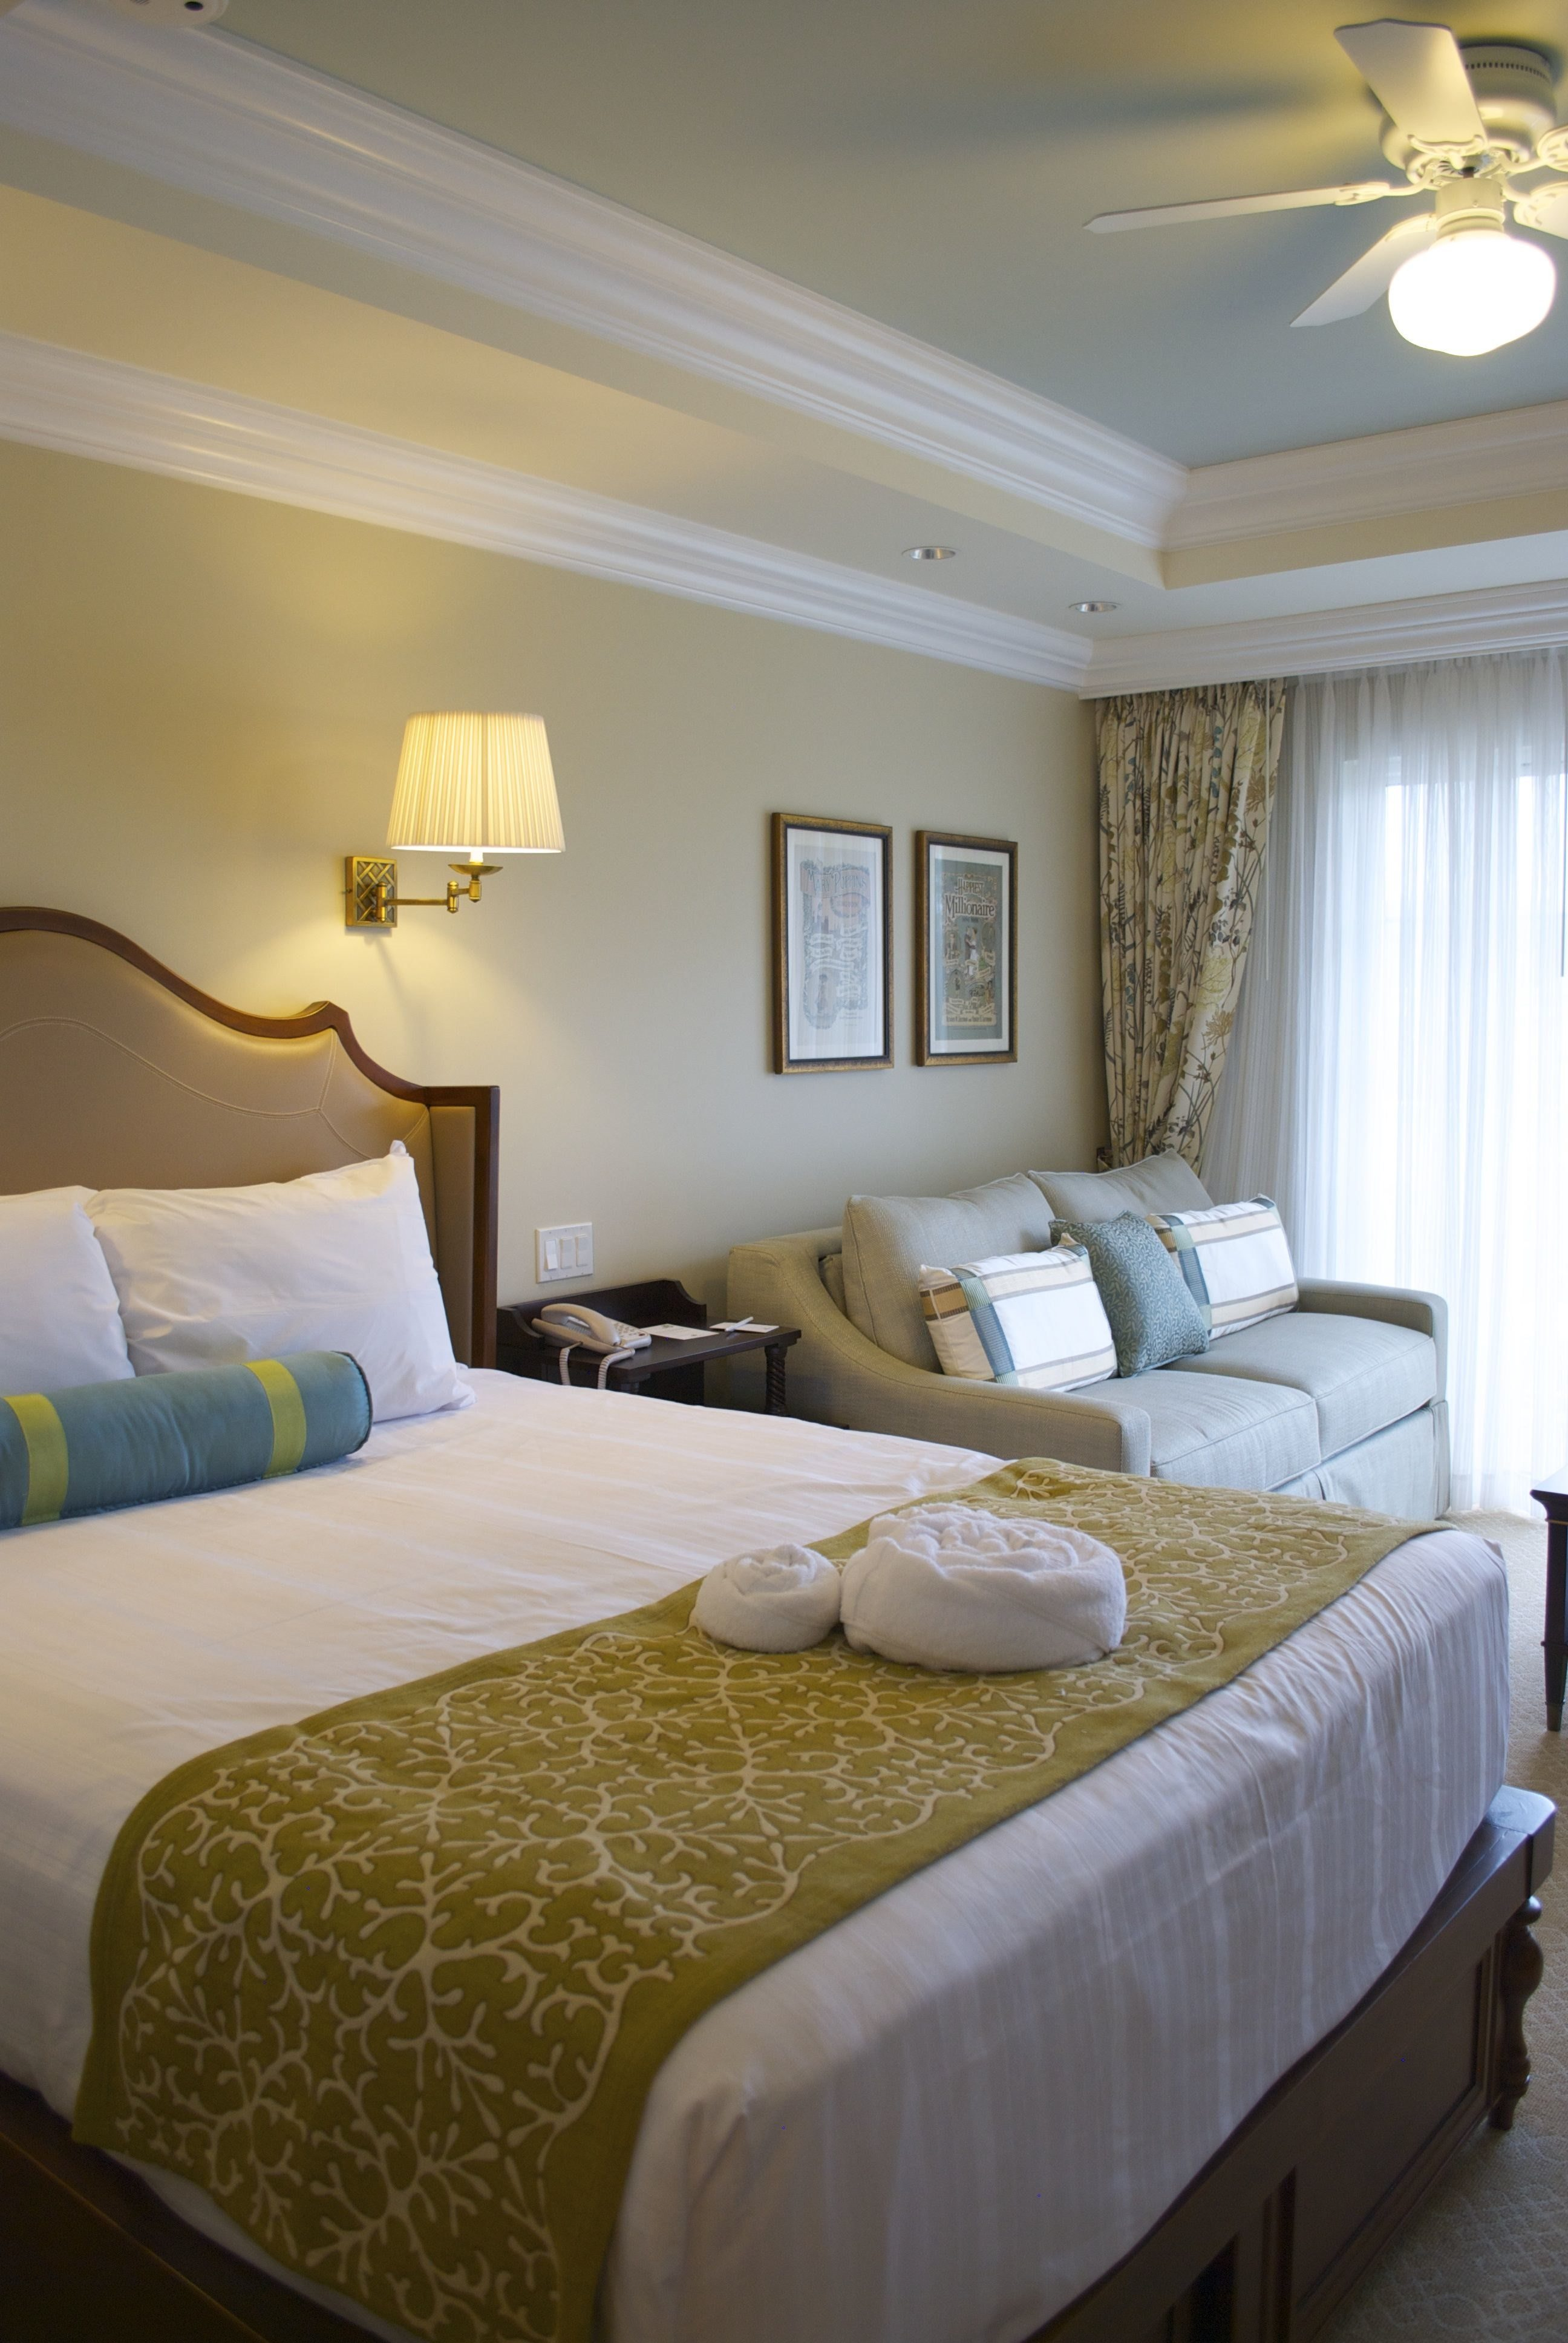 pull out bed chair office ergonomic the villas at disney's grand floridian resort & spa | dvc resale market